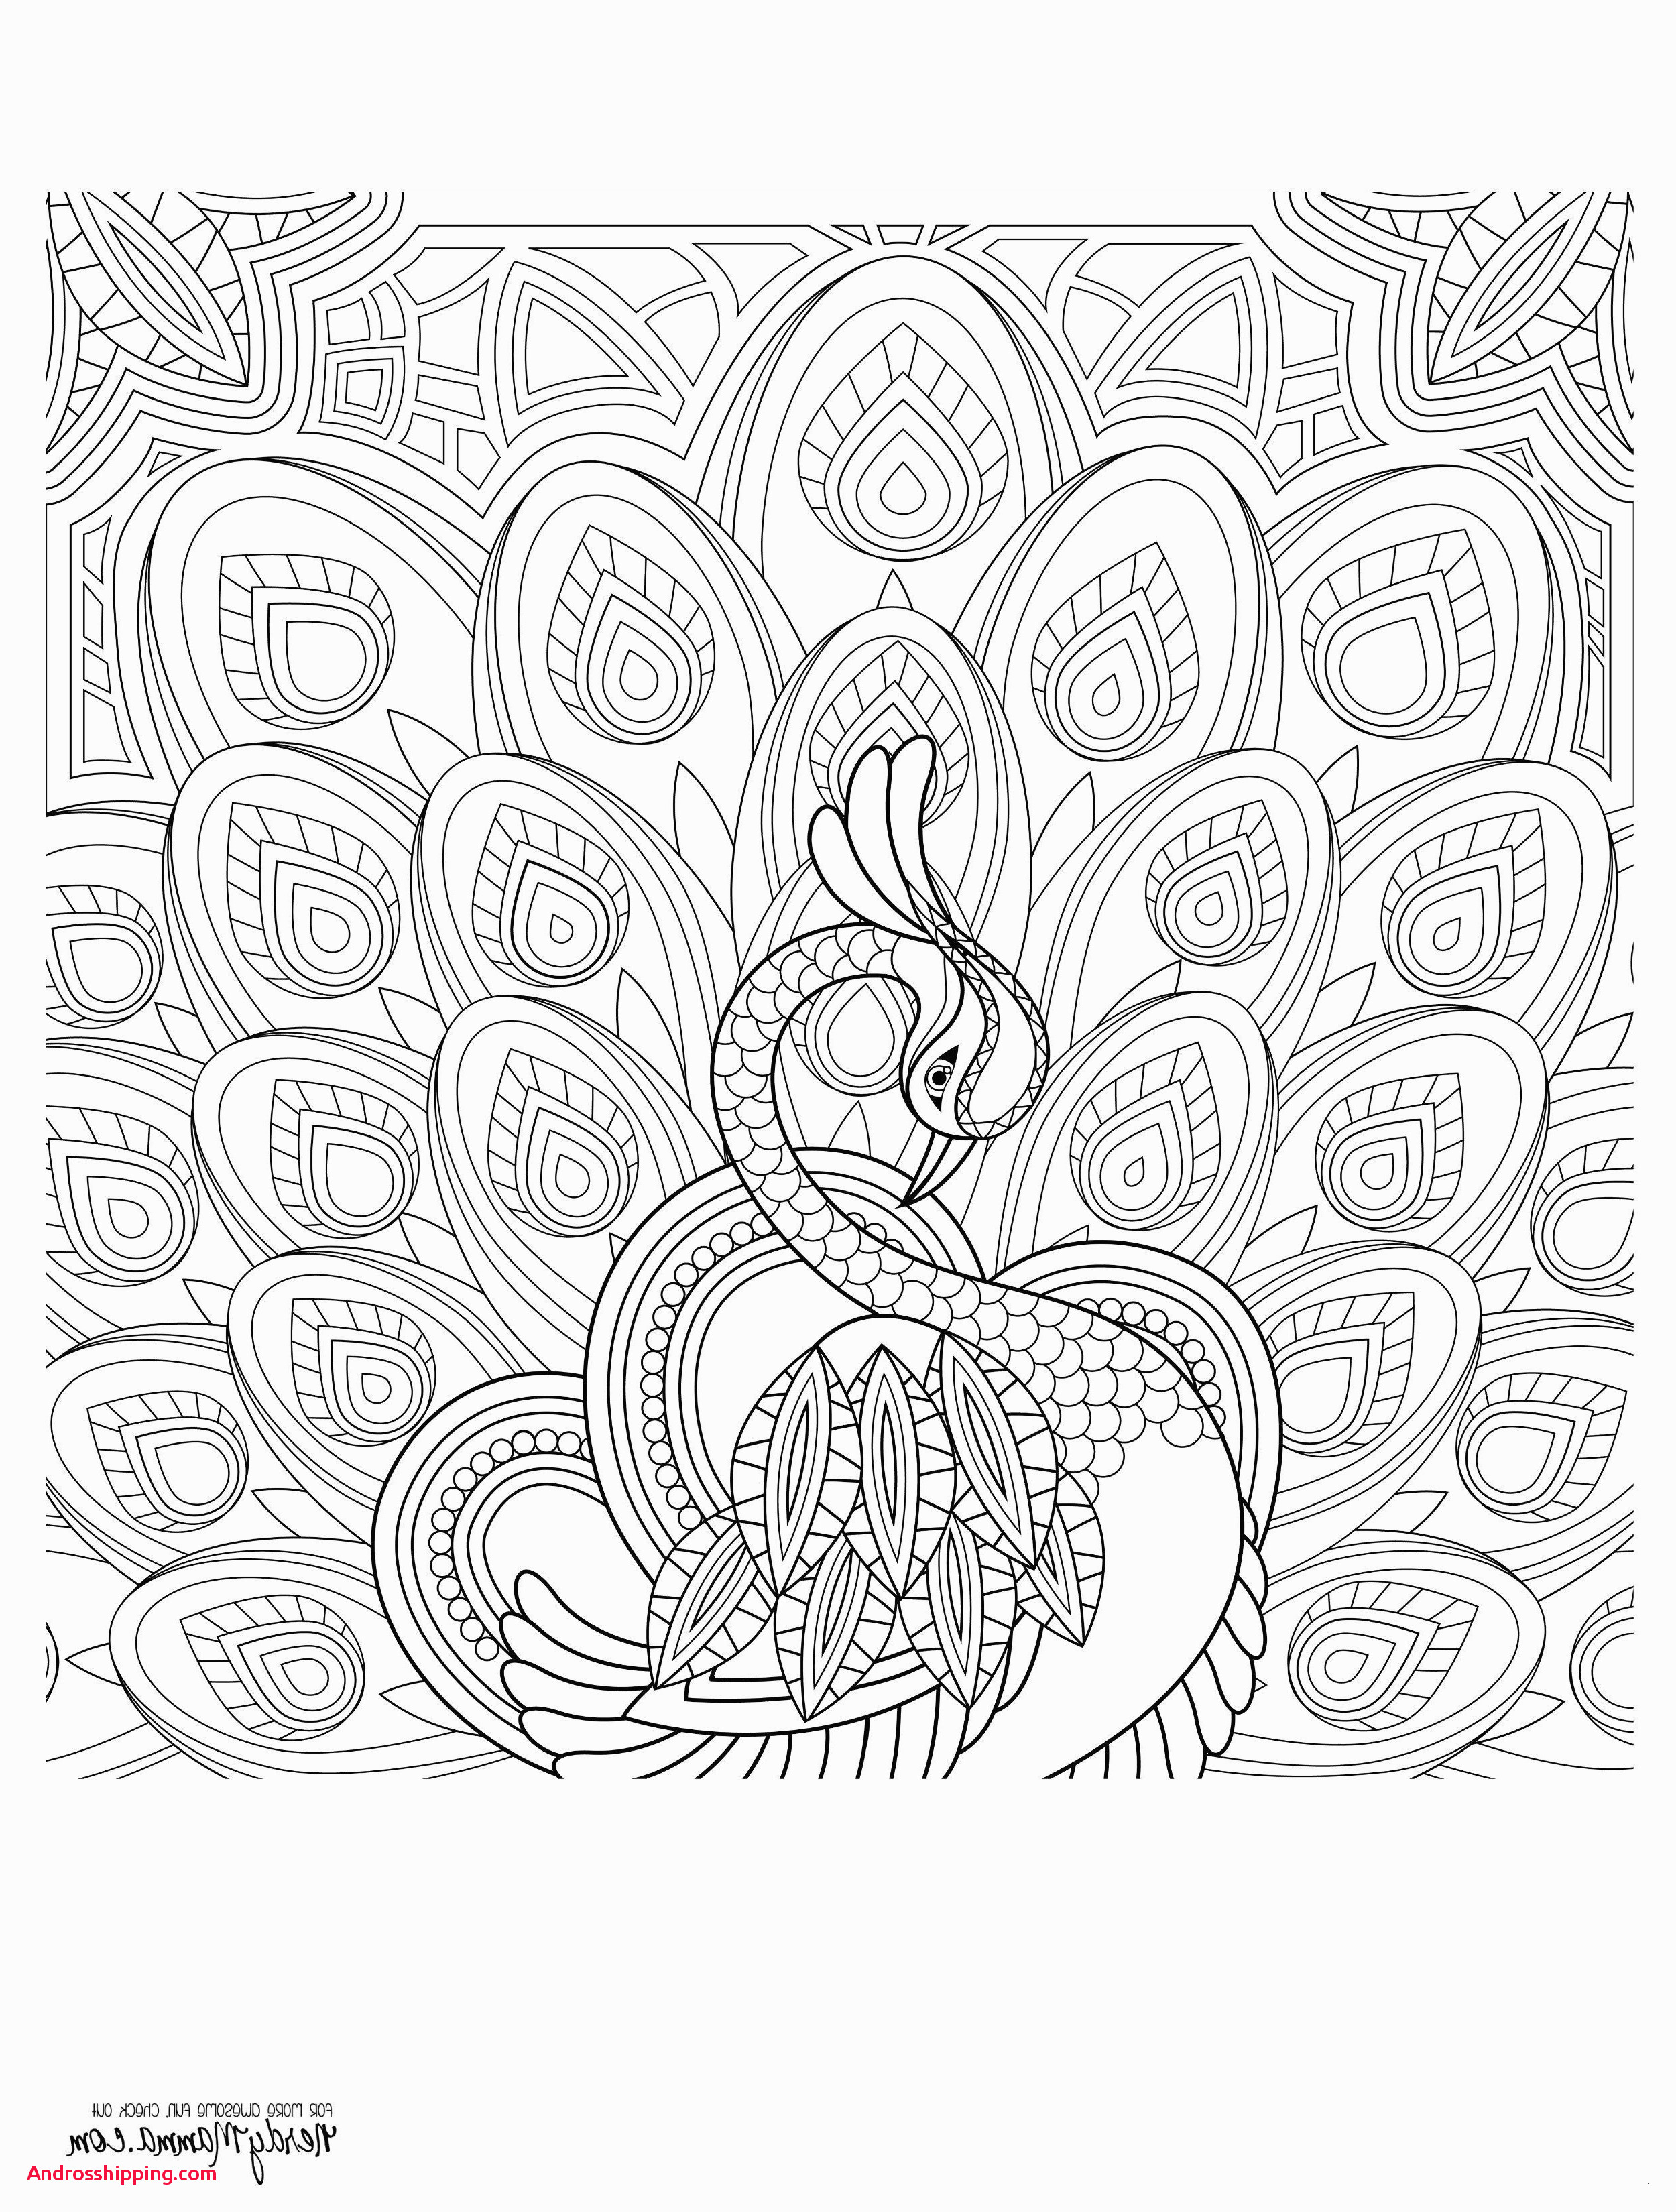 coloring pages bookmarks Download-Color by Number Coloring Pages Free Brilliant New Colouring Family C3 82 C2 A0 0d Free 15-a